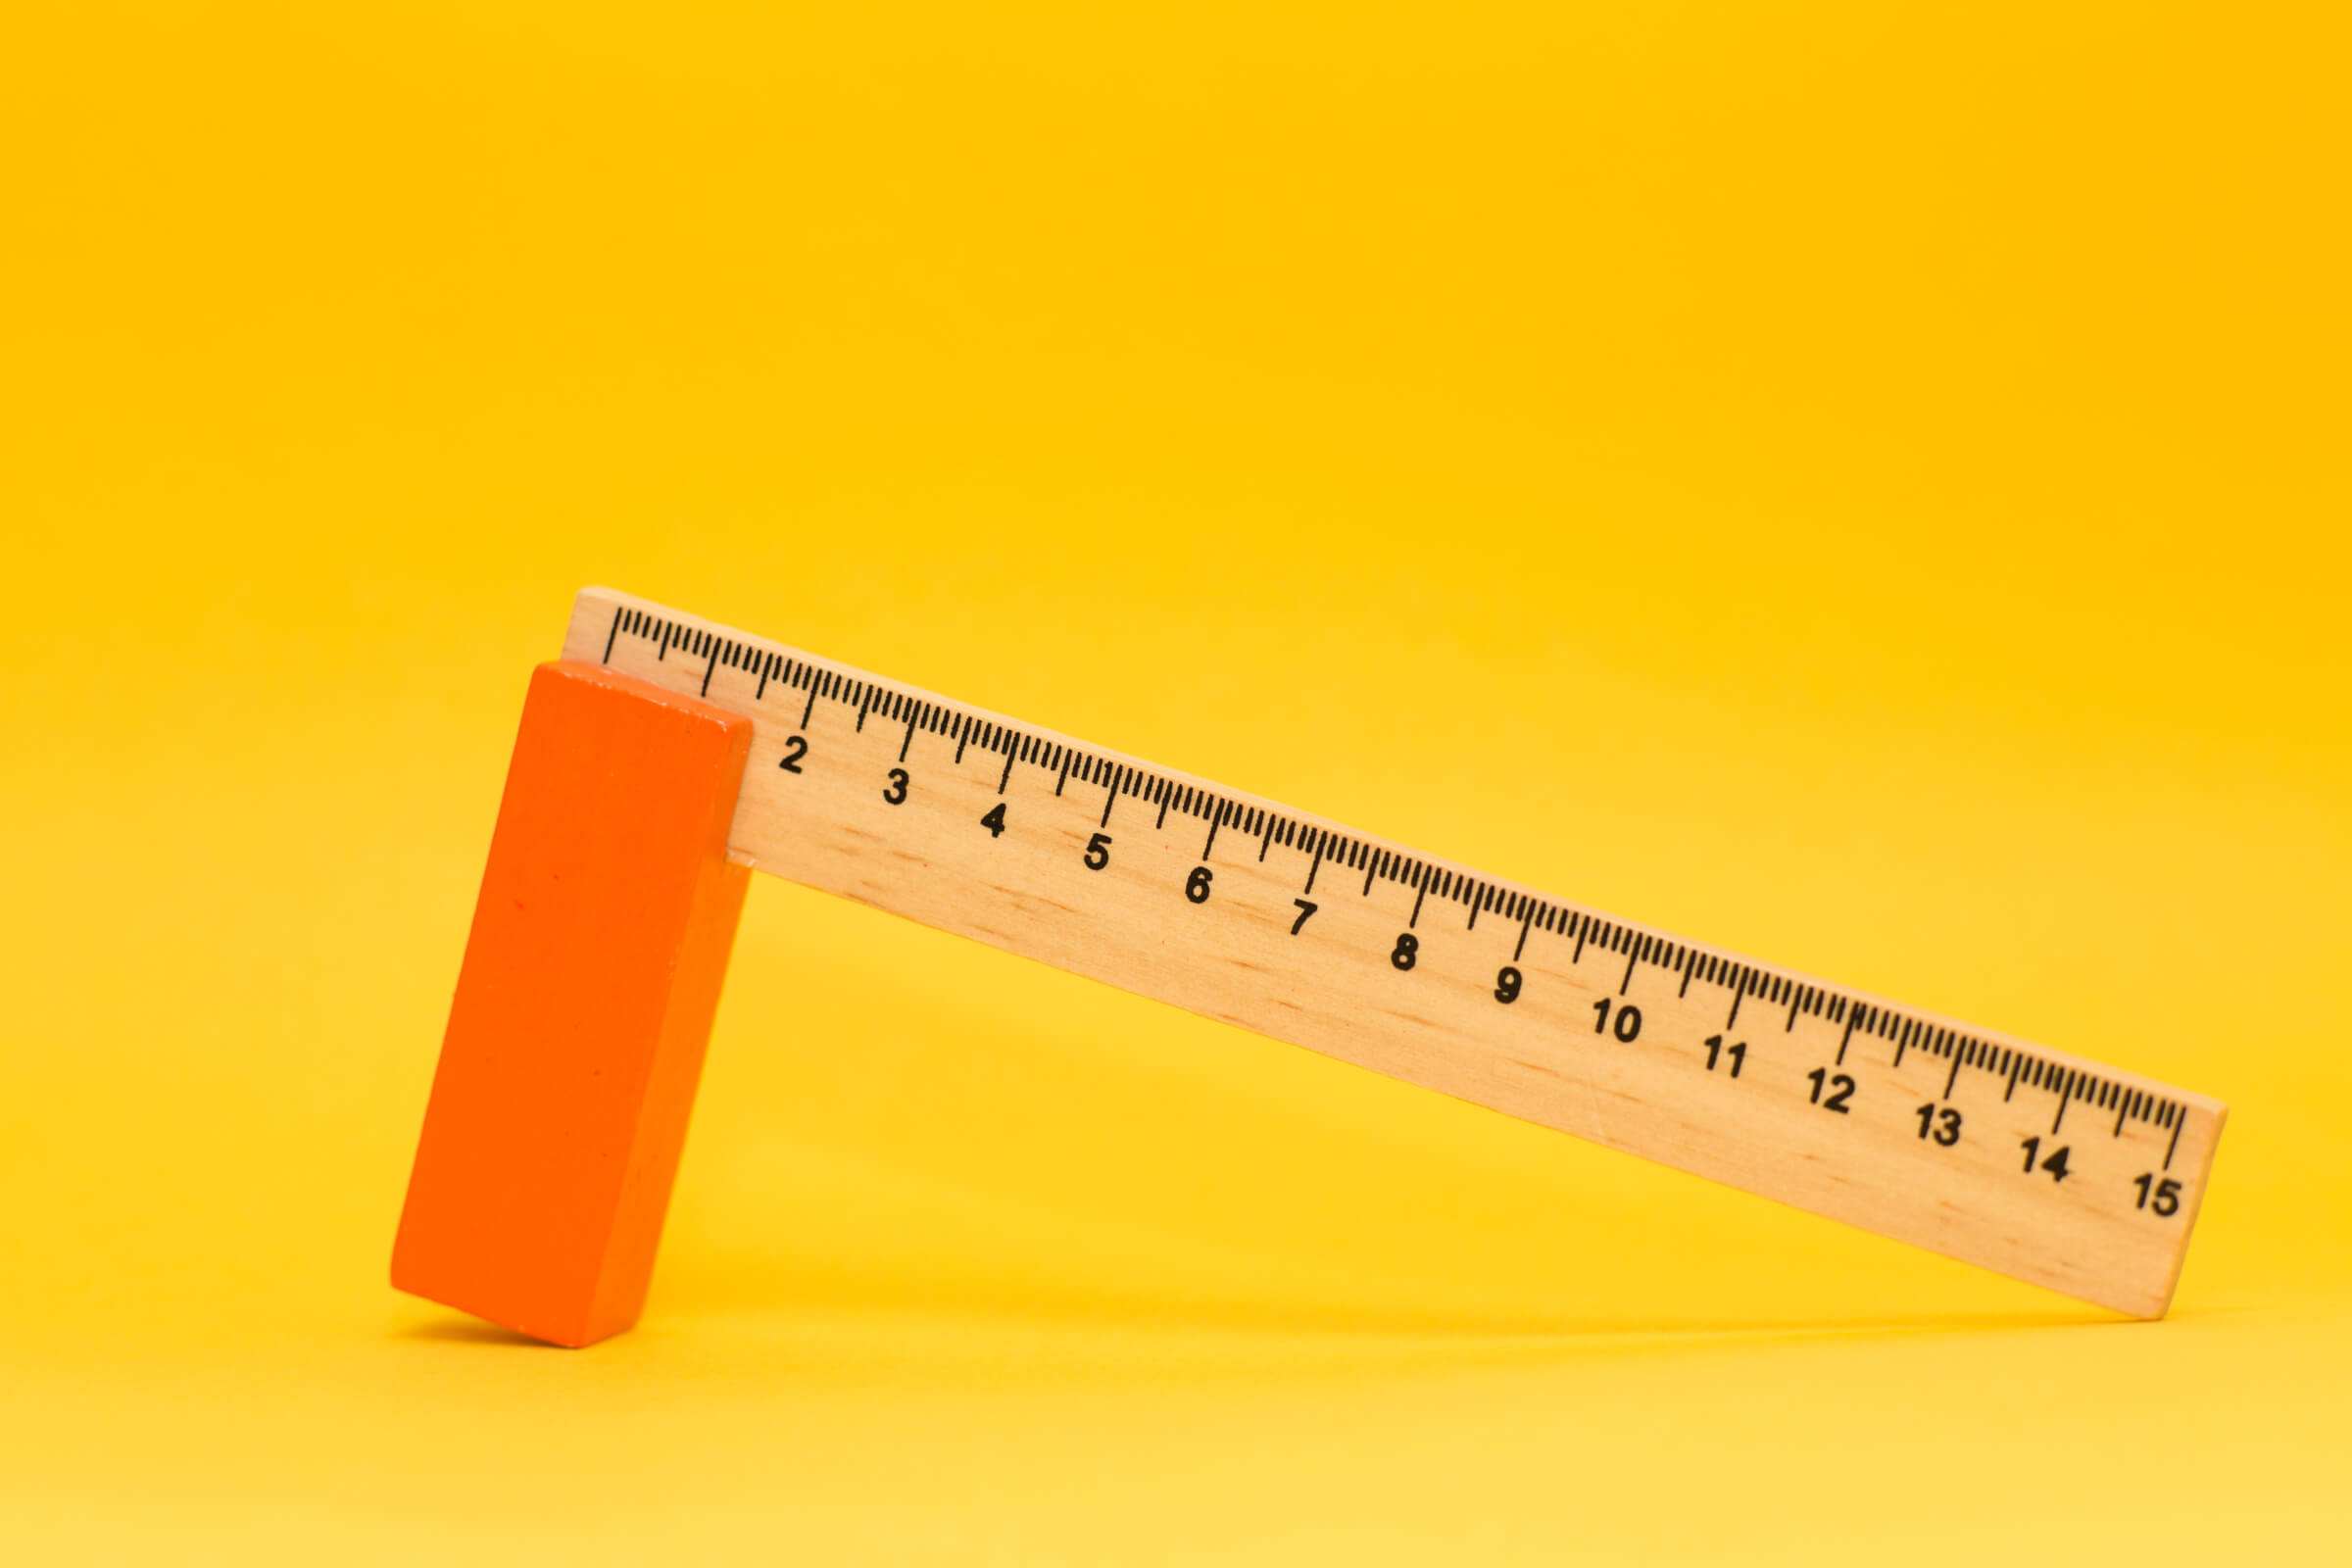 Performance Measurement: What Are You Measuring In Your Life?